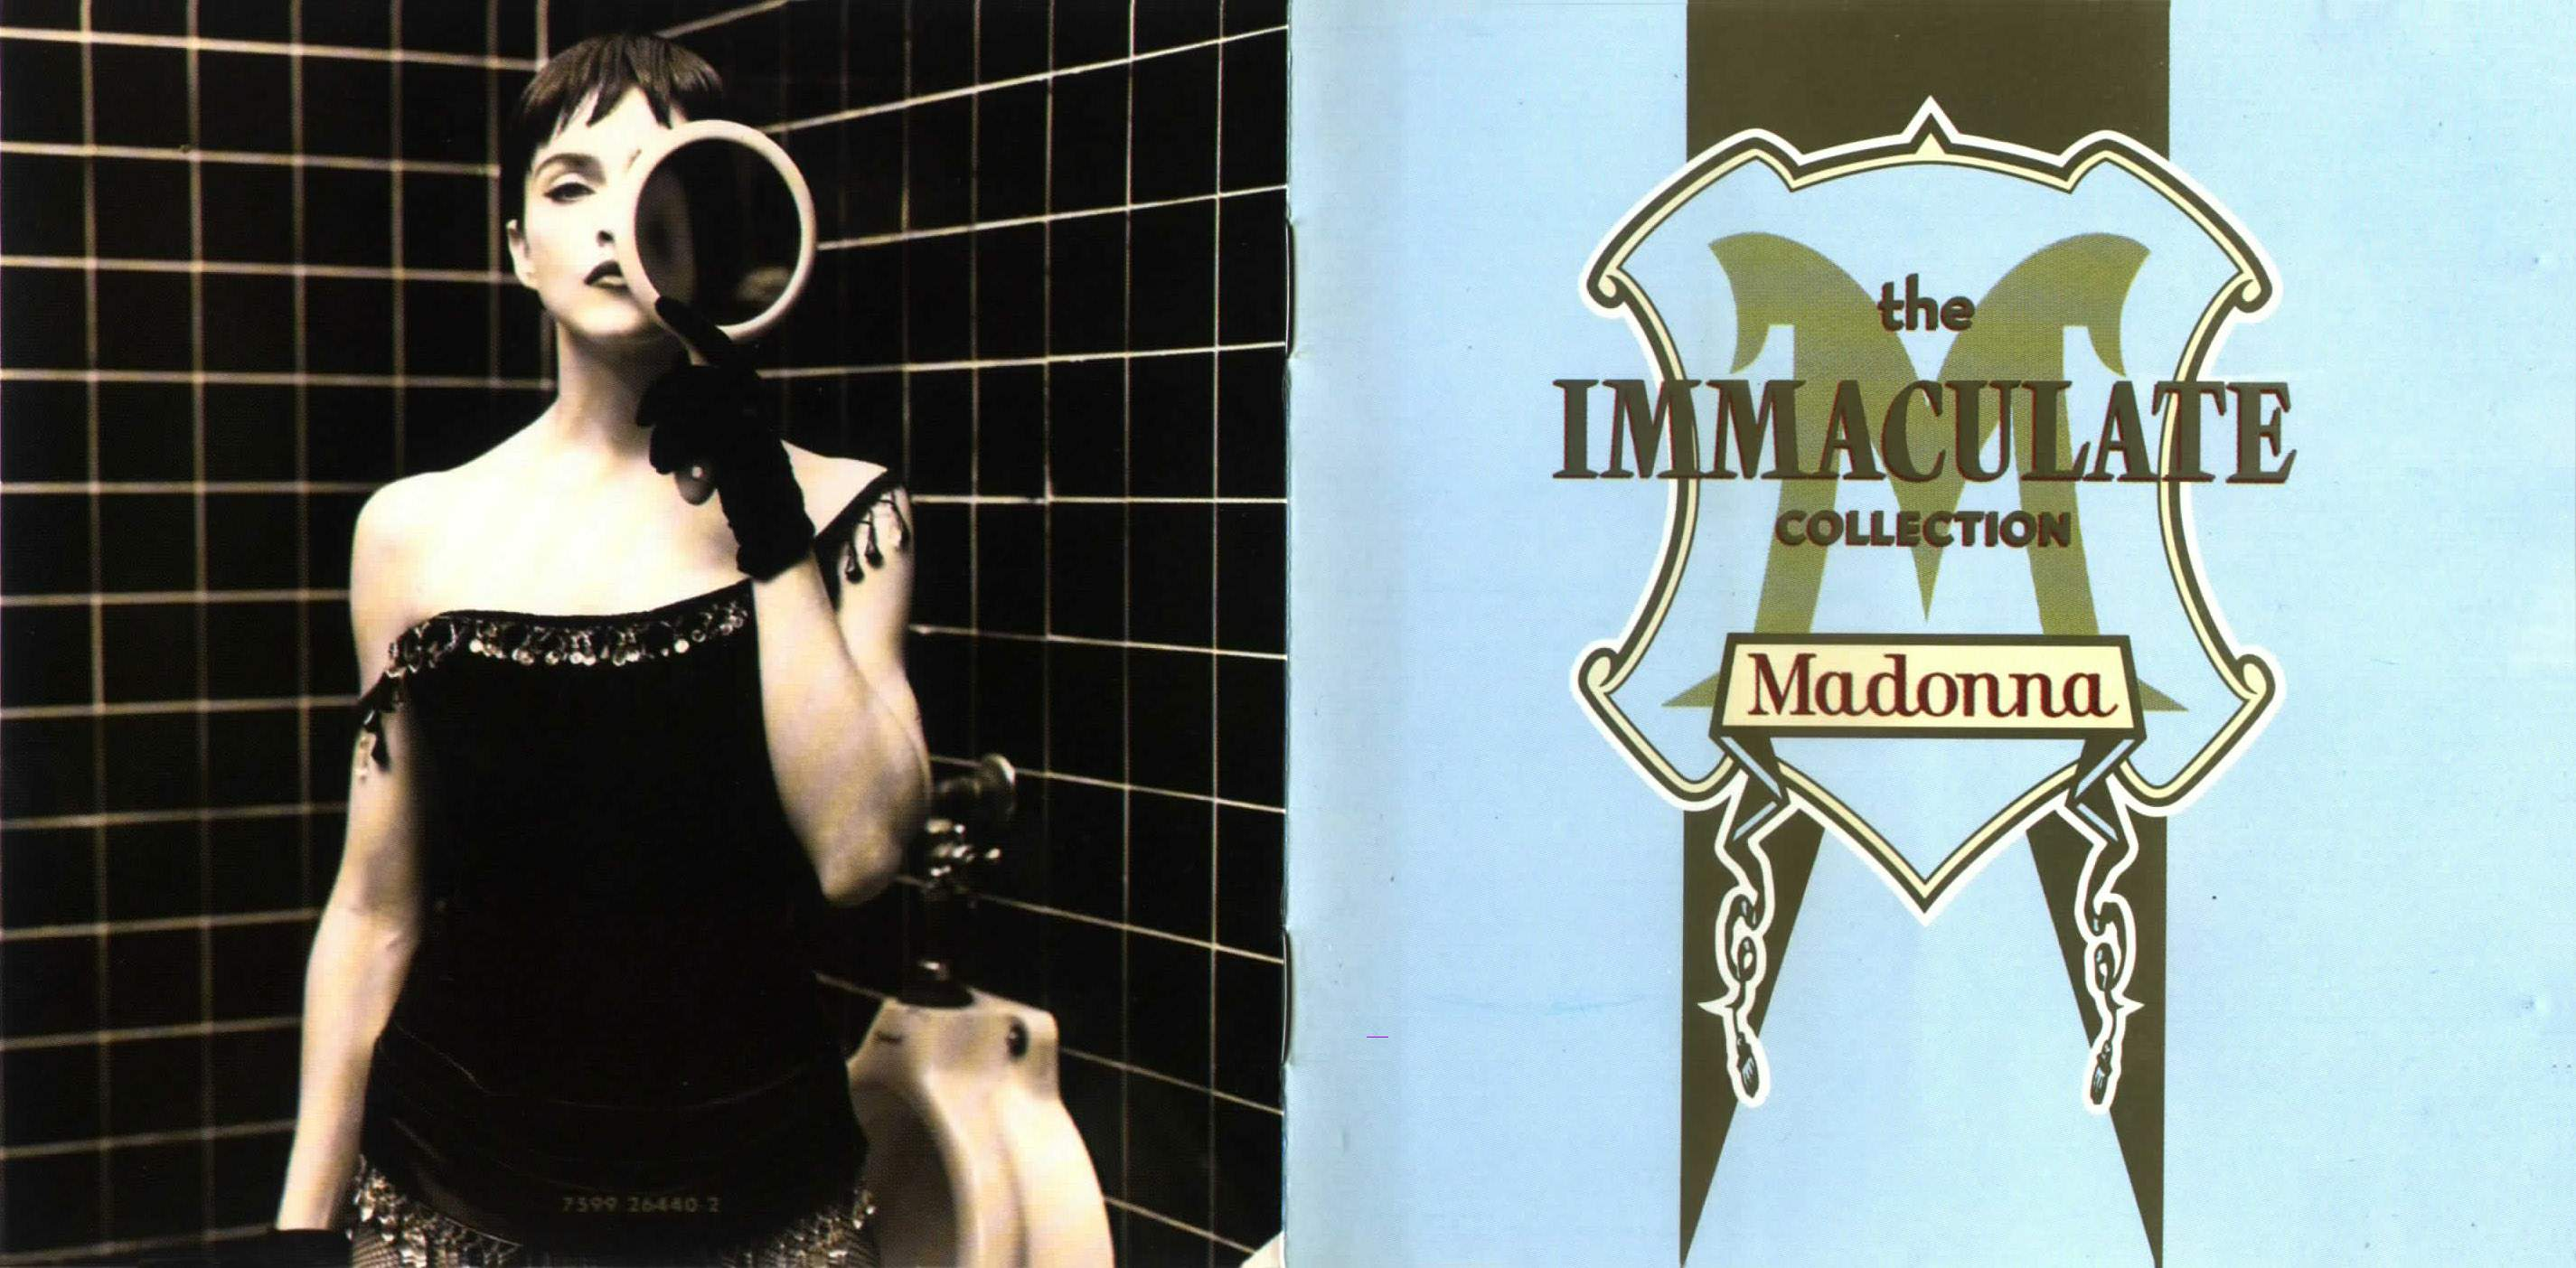 madonna forum view topic the immaculate collection cd